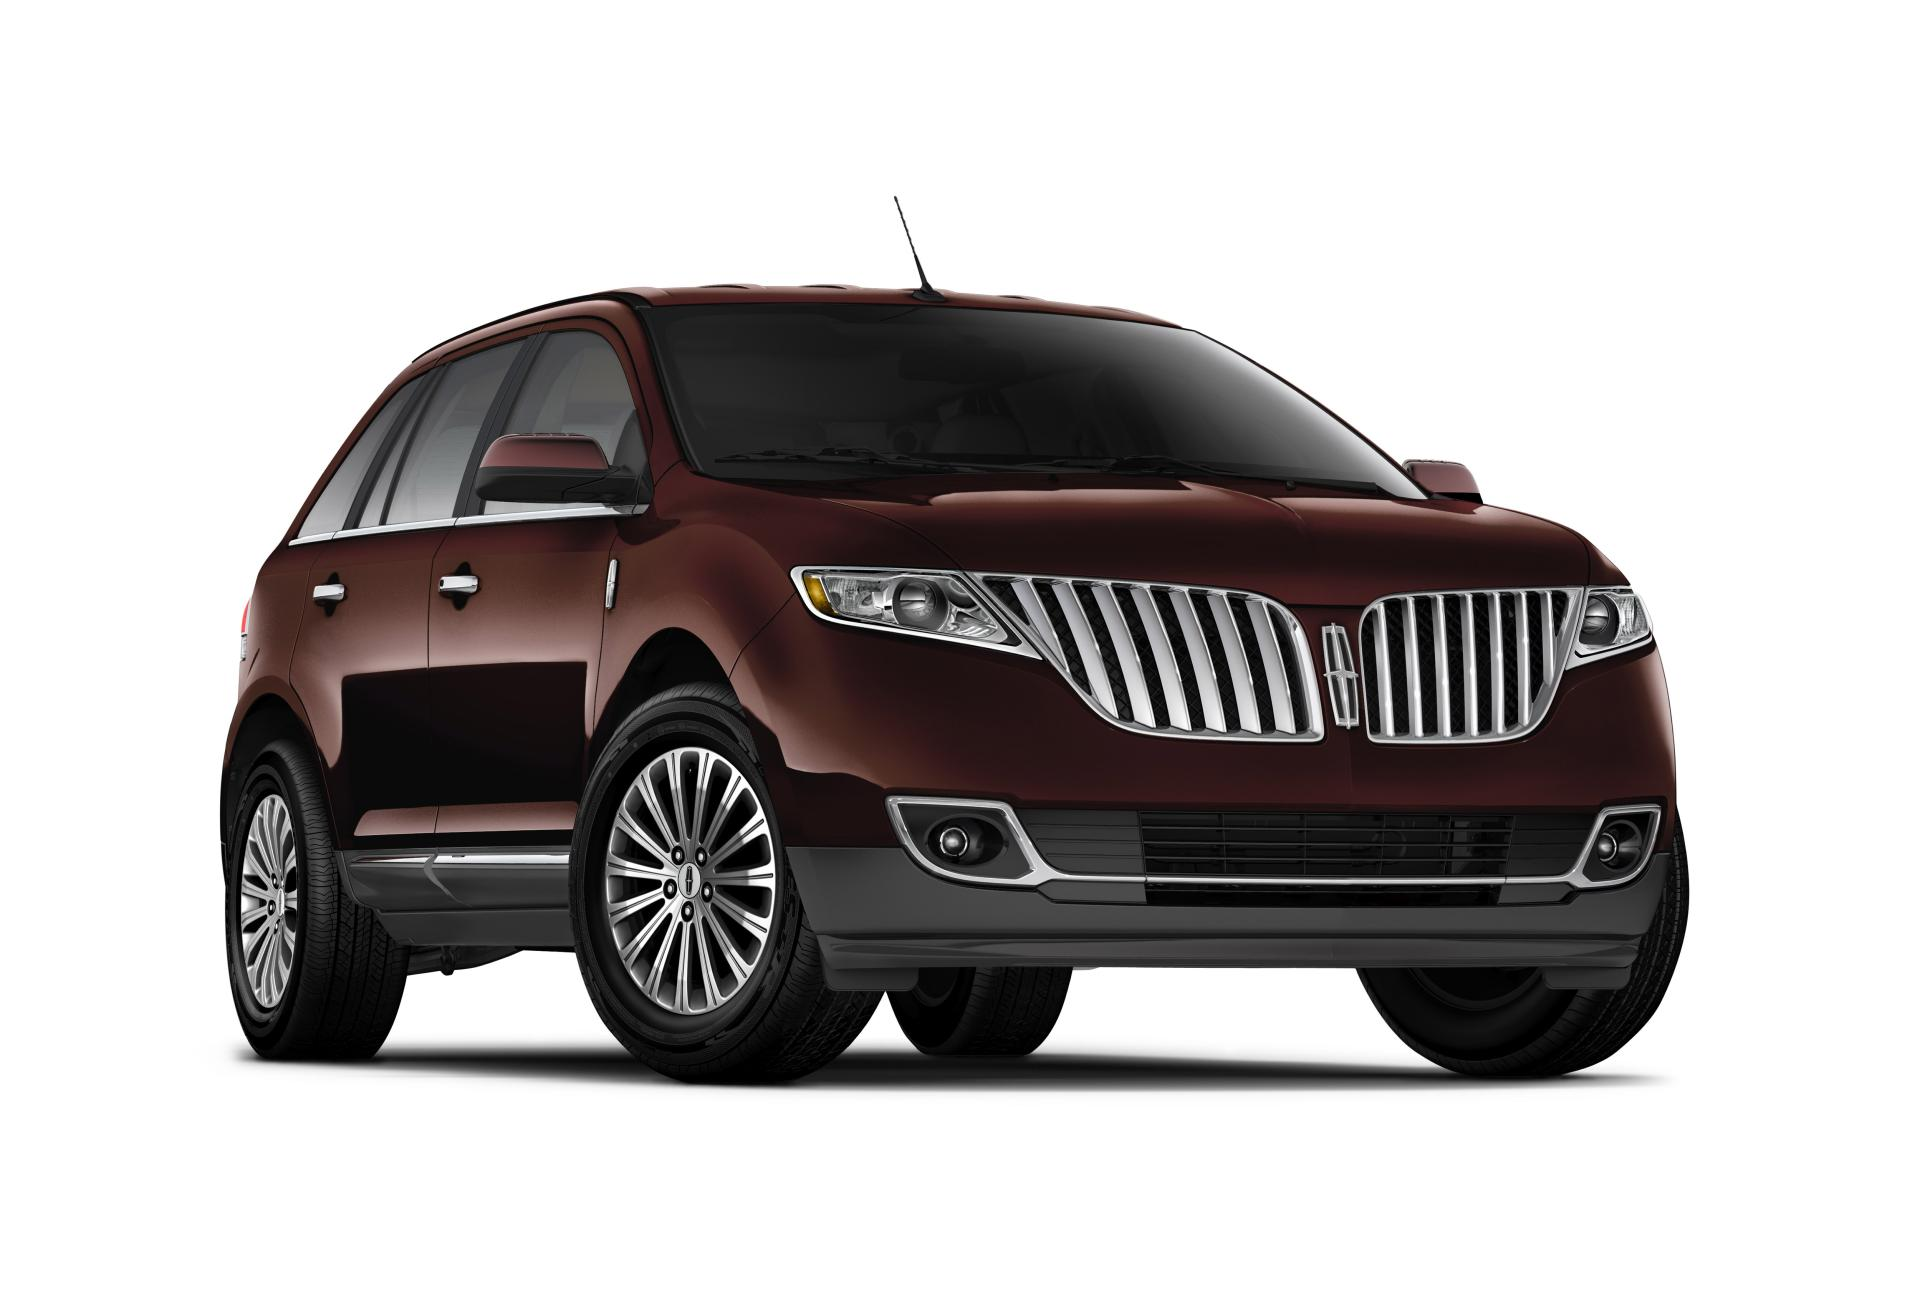 Lincoln Mtx http://www.almrsal.com/post/8802/2013-lincoln-mkx-4